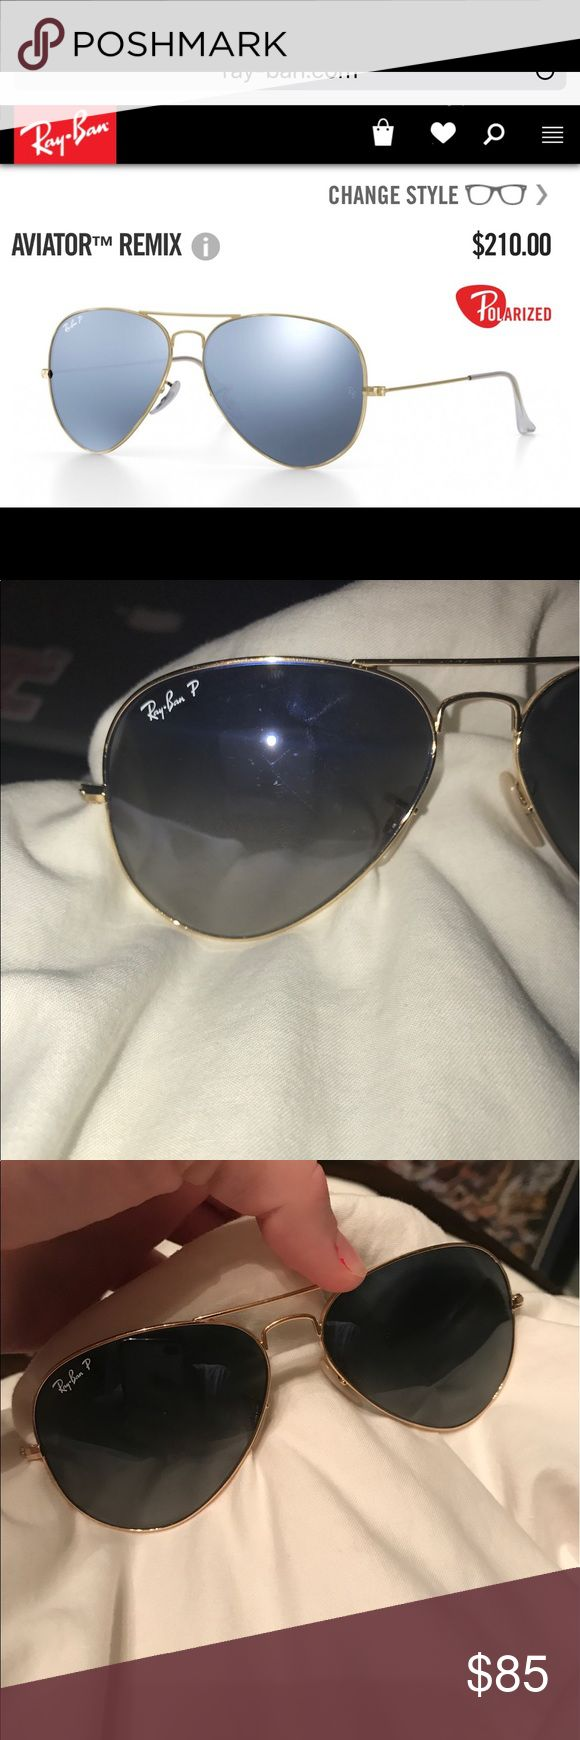 ray bans ray ban aviators, standard size, polarized, used but in great condition, see photos! Paid $210, asking $85! Ray-Ban Accessories Sunglasses